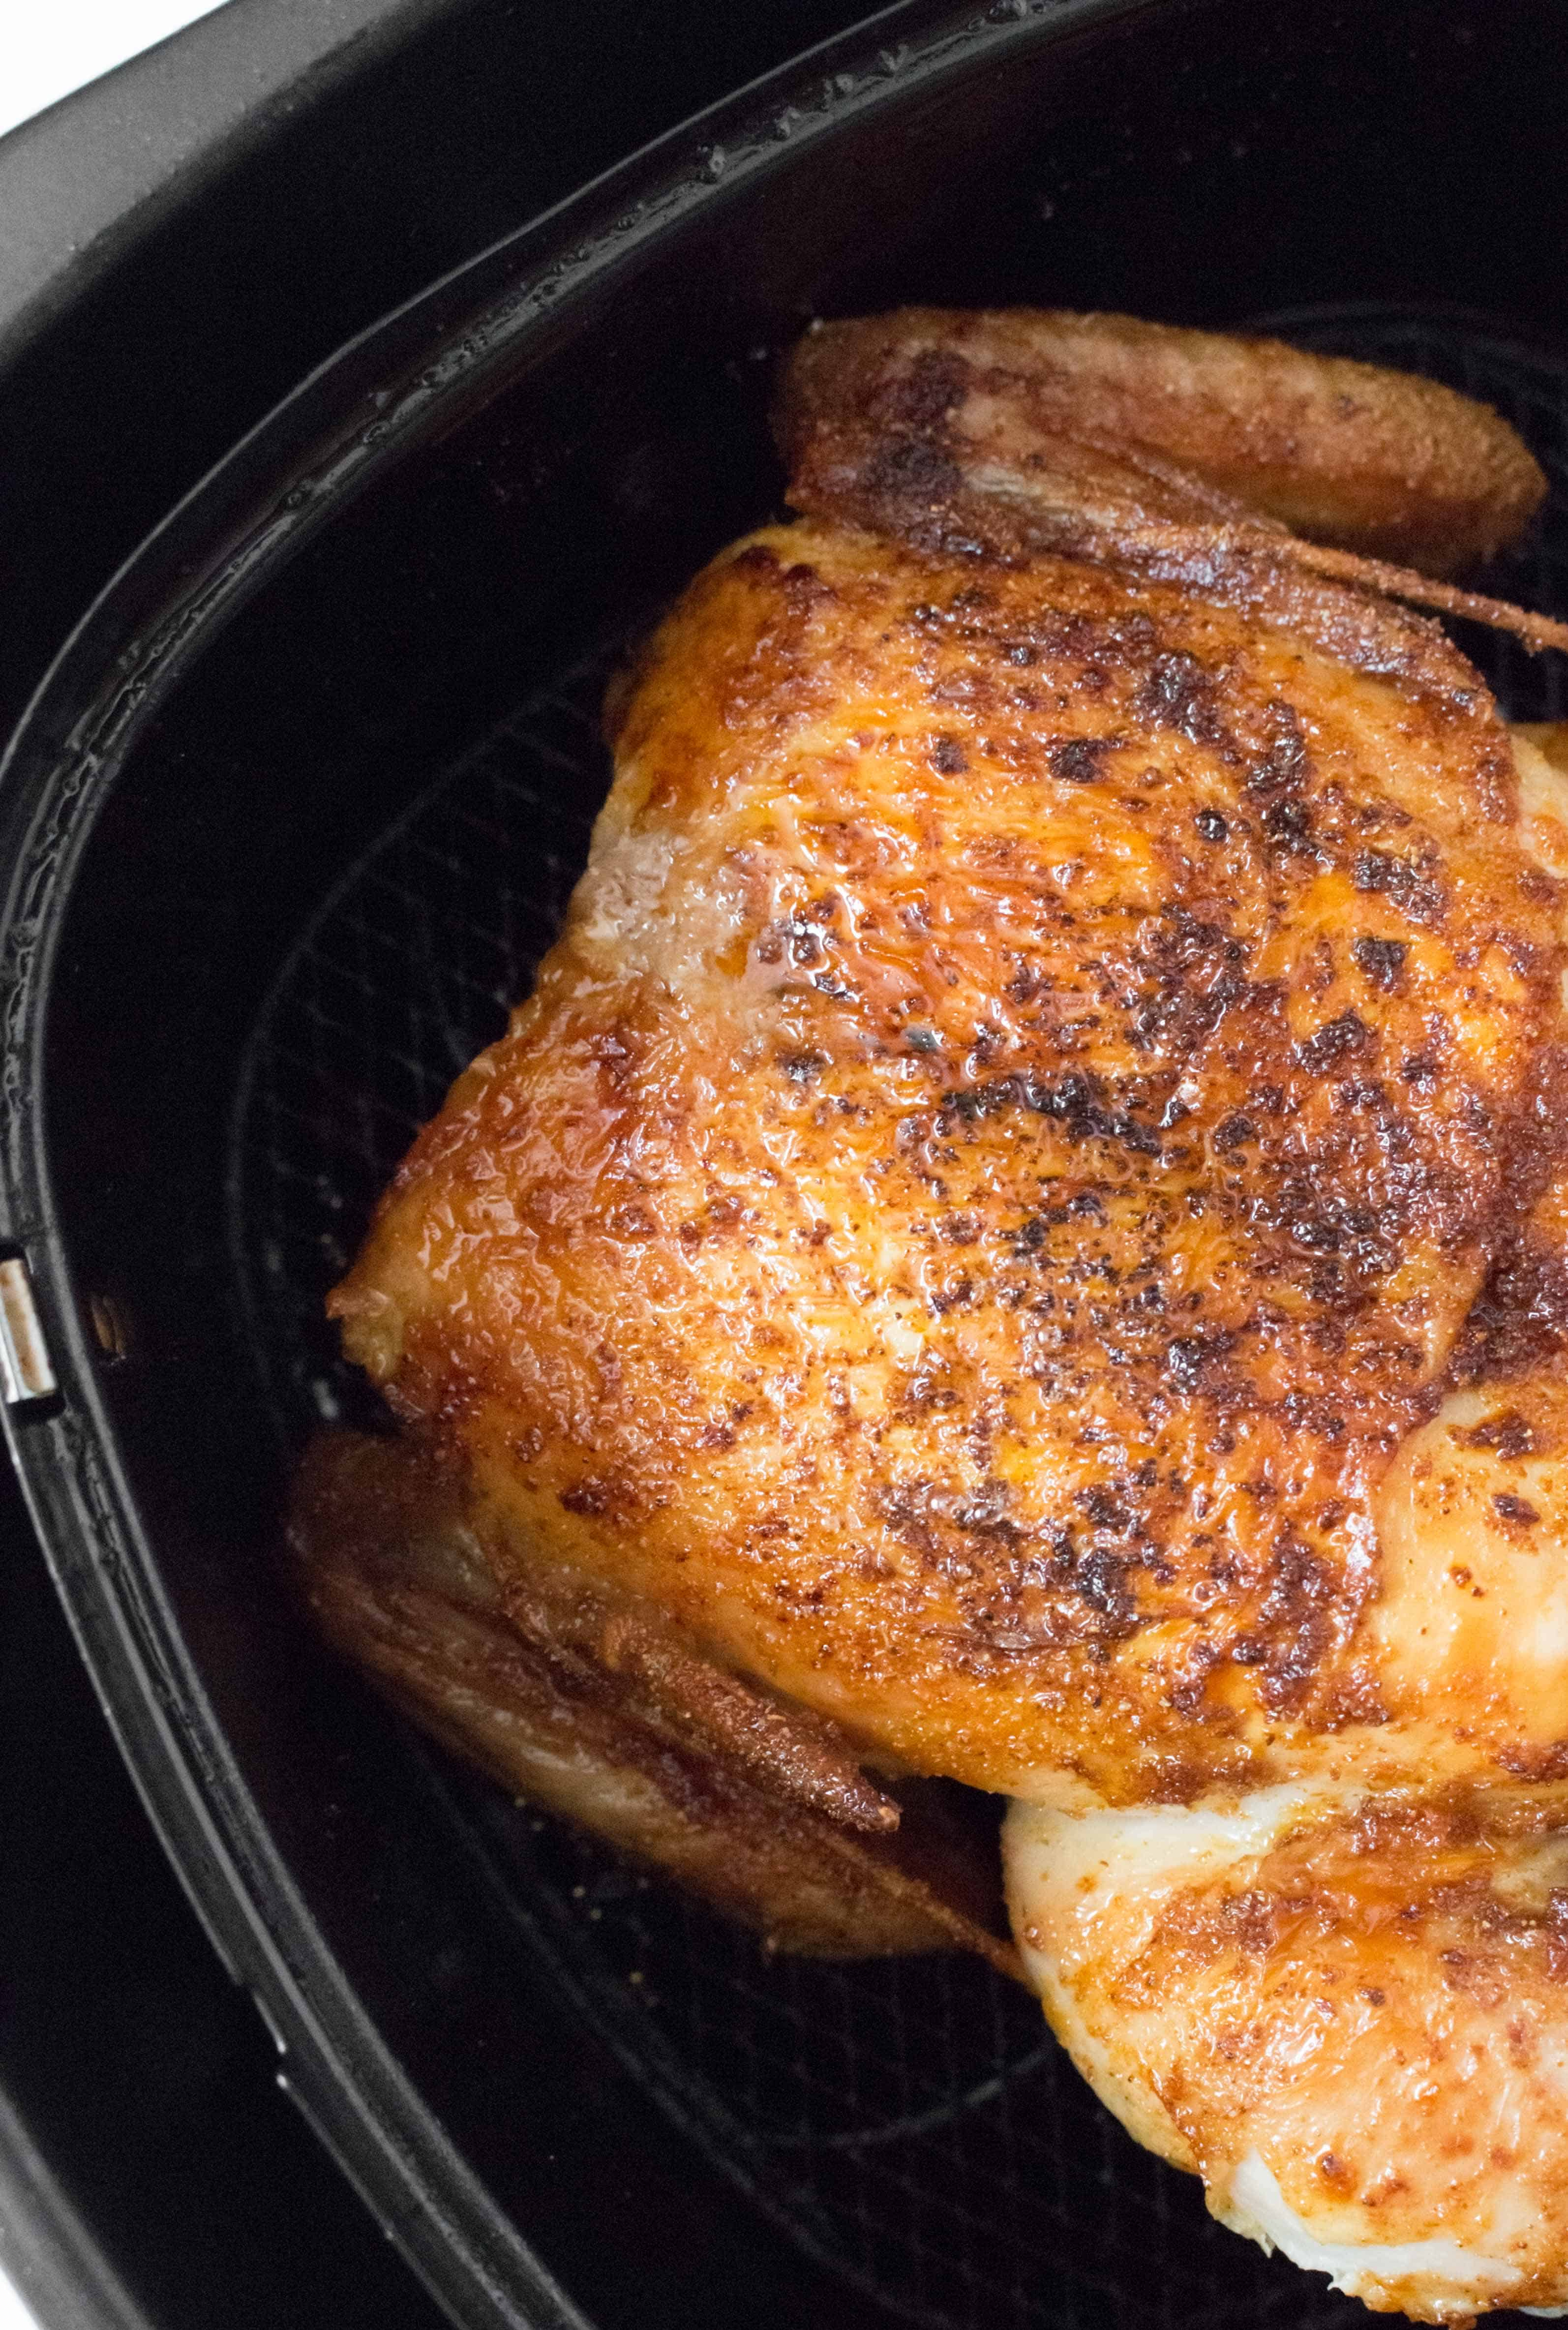 How to Cook a Whole Chicken in an Air Fryer